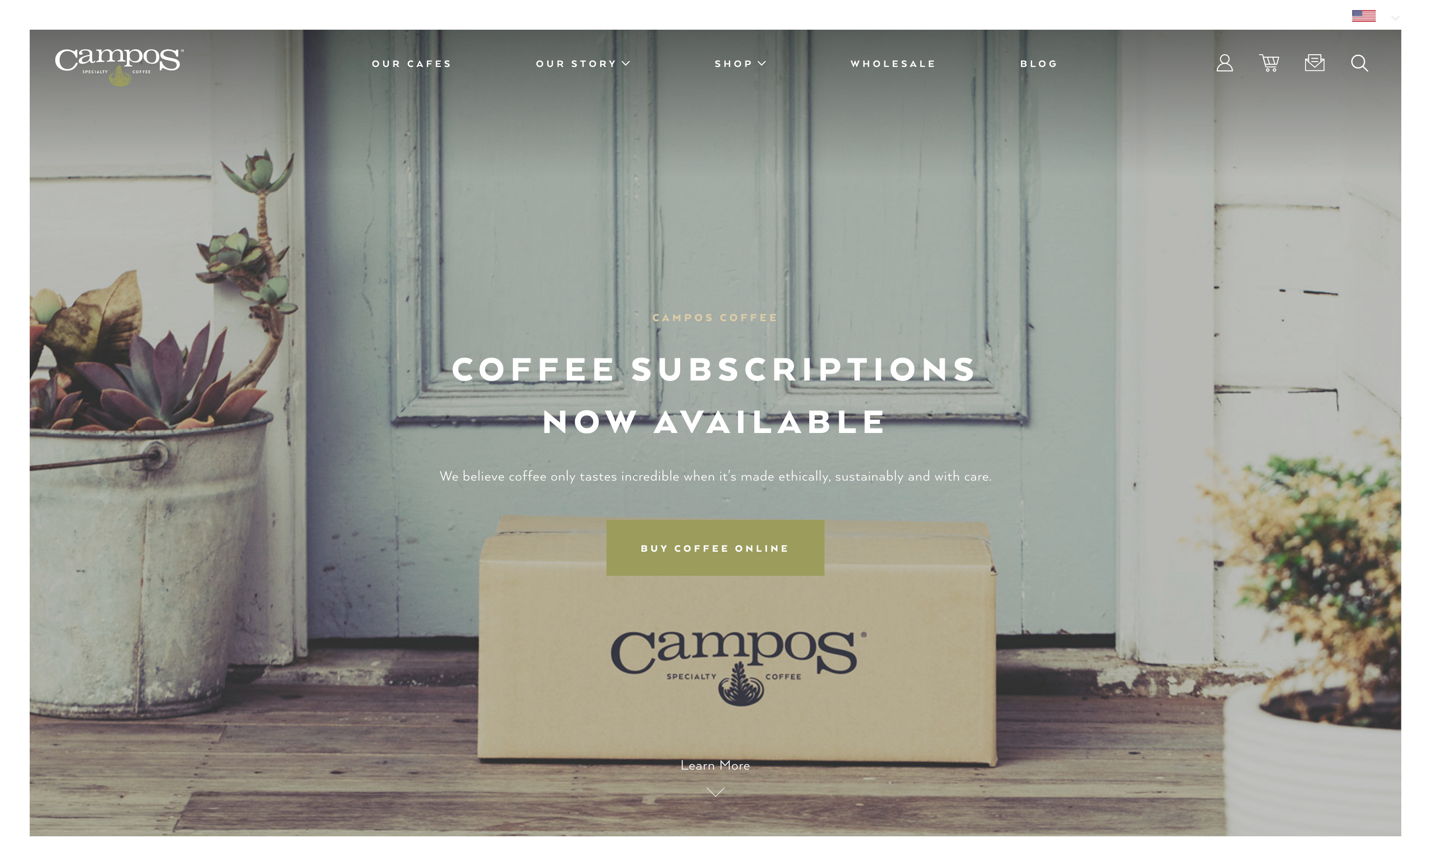 Screen of Campos' Coffee main page